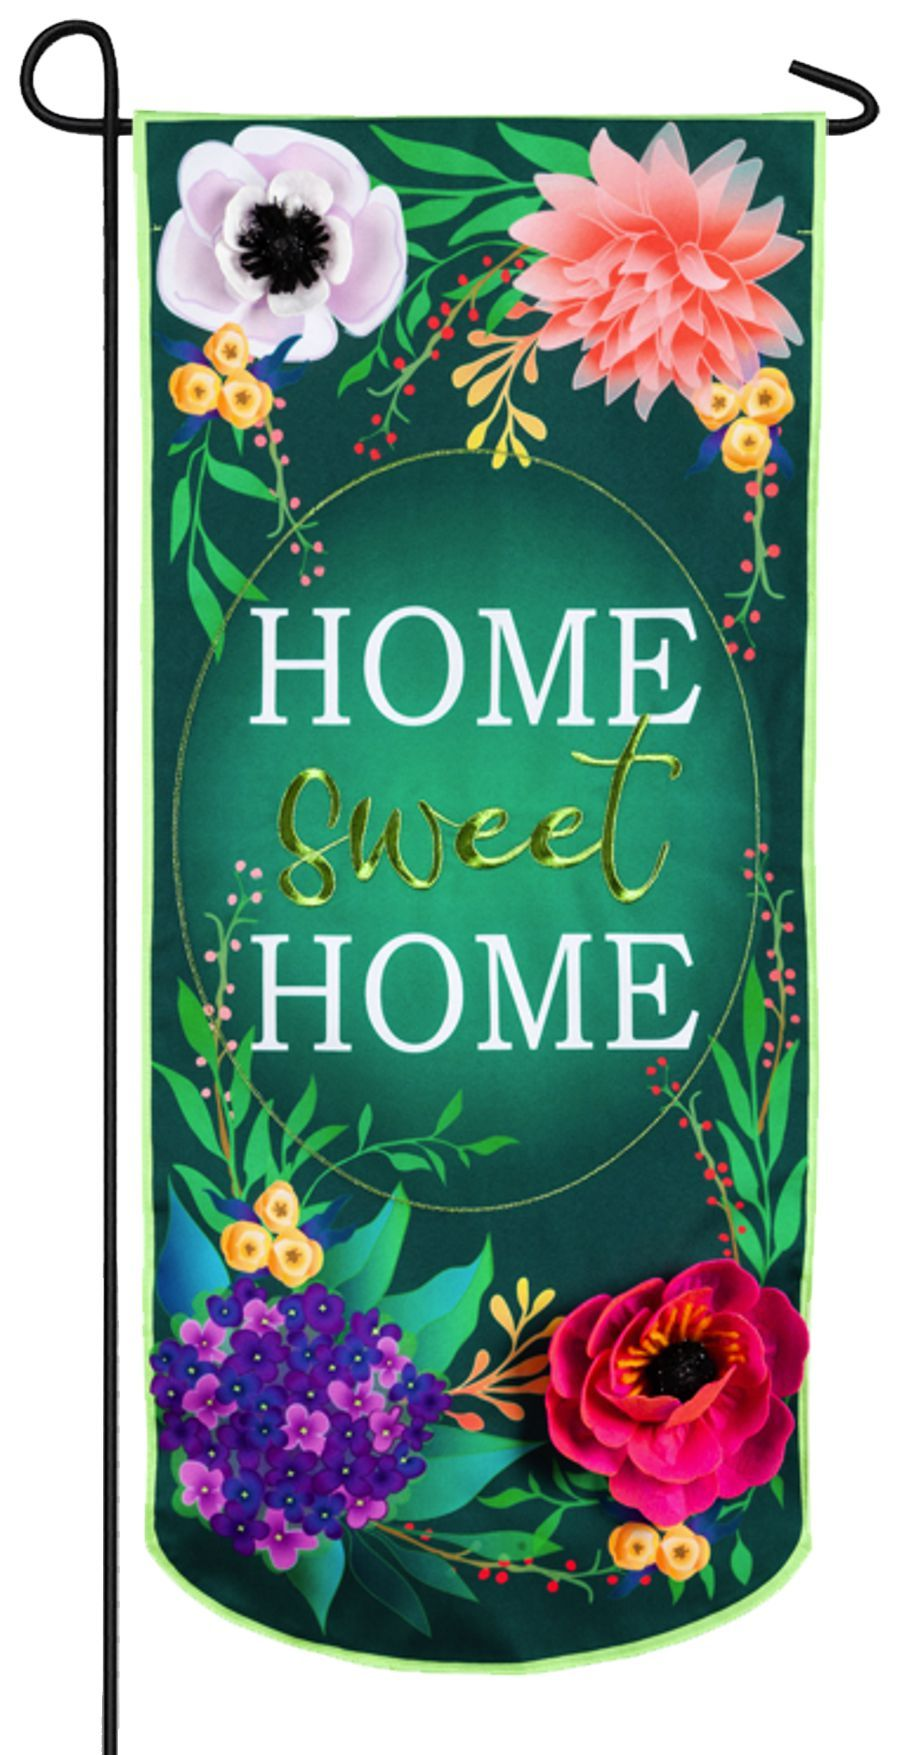 Linen Home Sweet Home Applique Garden Banner